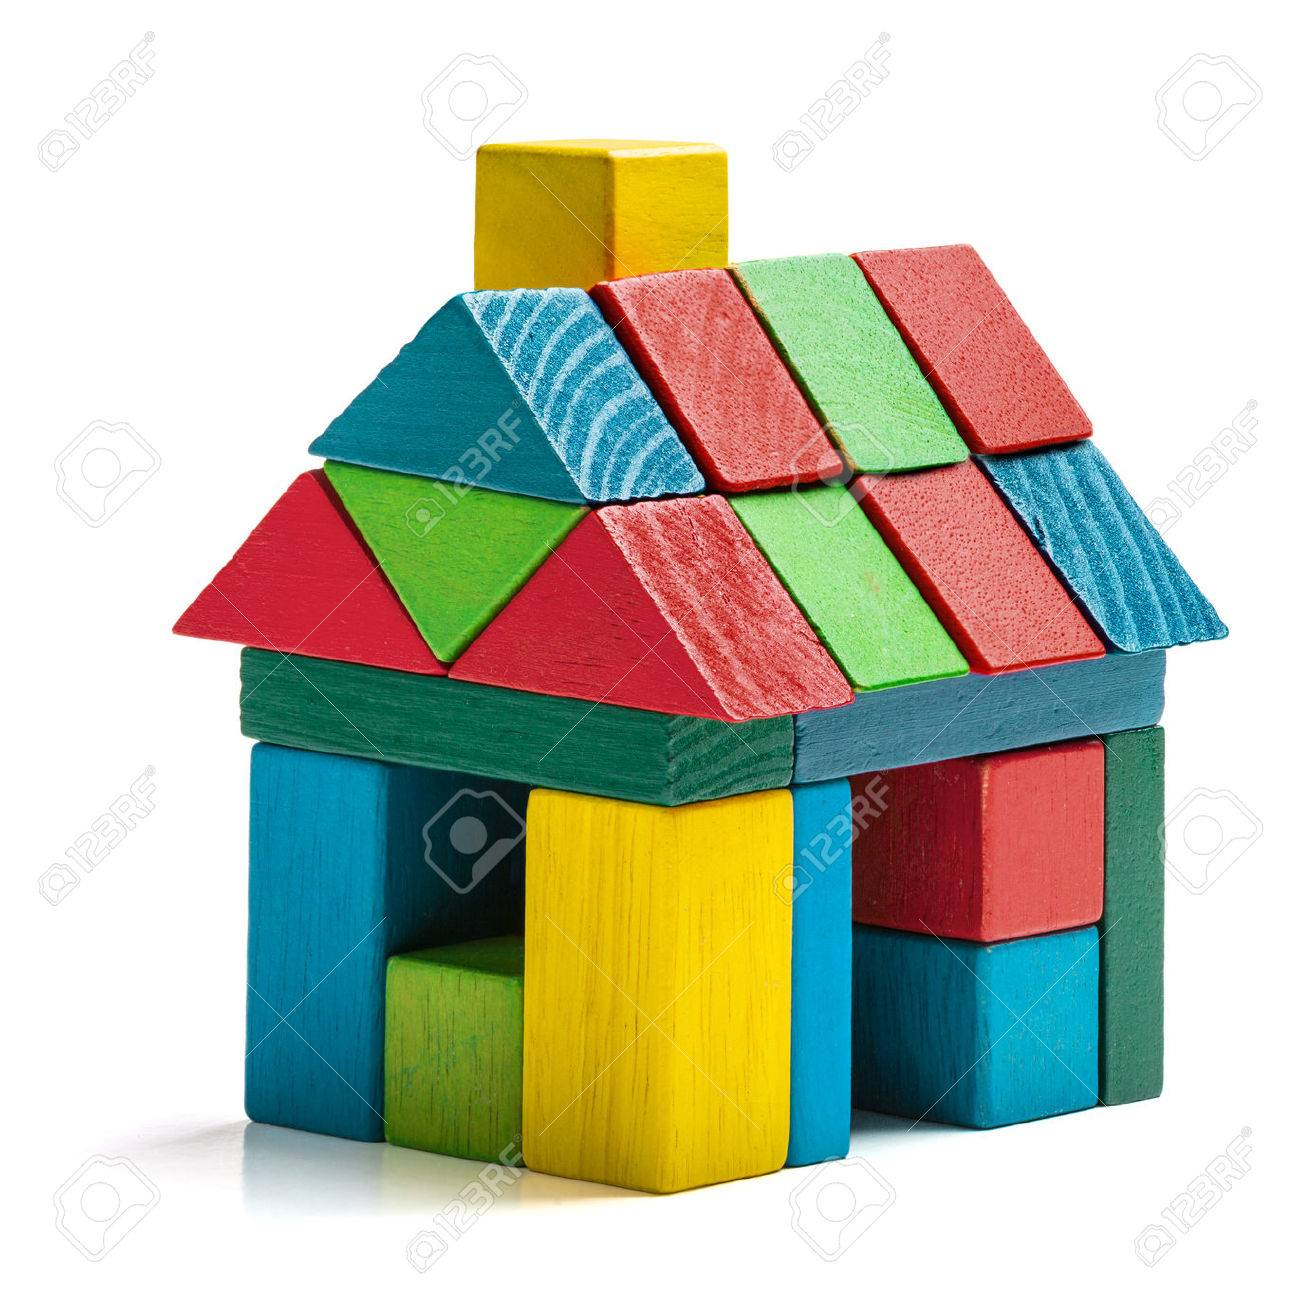 1300x1300 Building Blocks Images Amp Stock Pictures. Royalty Free Building